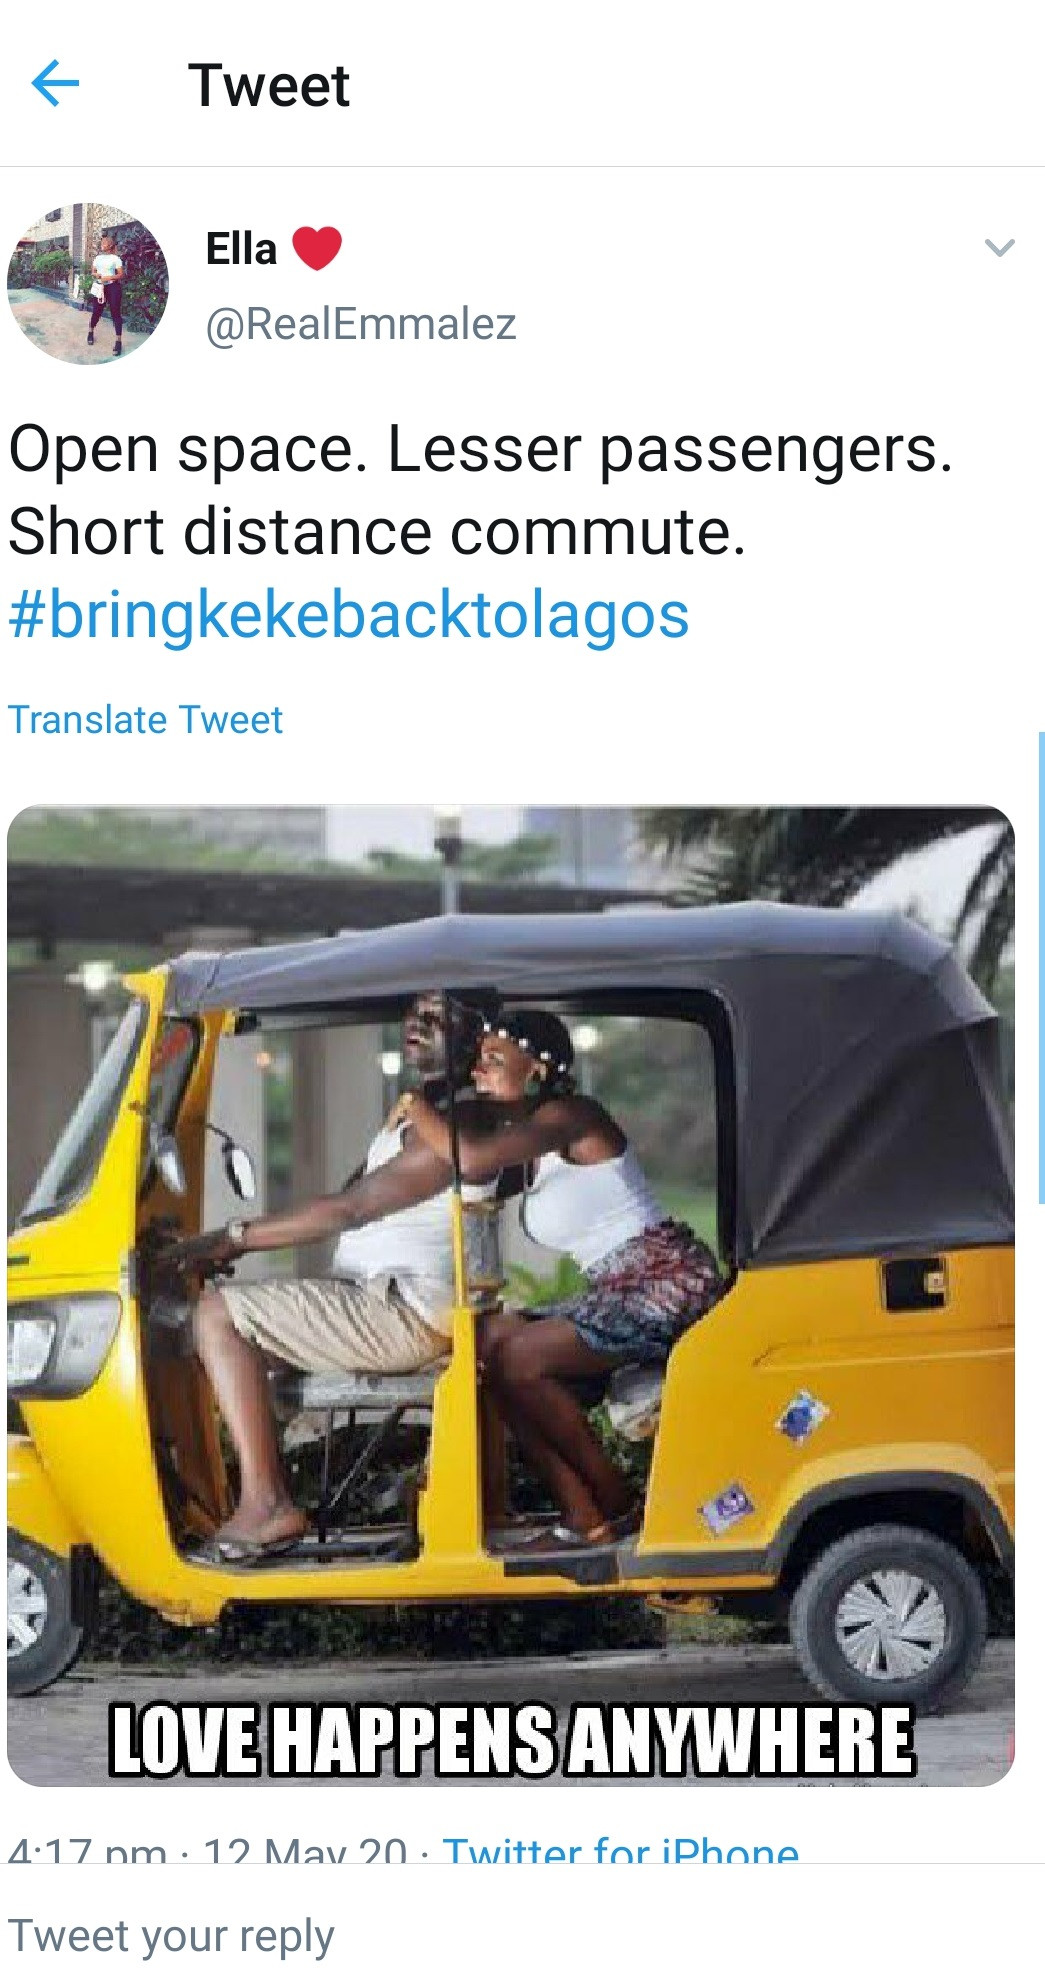 Lagosians are asking for the return of keke because of worsened traffic after ease of lockdown